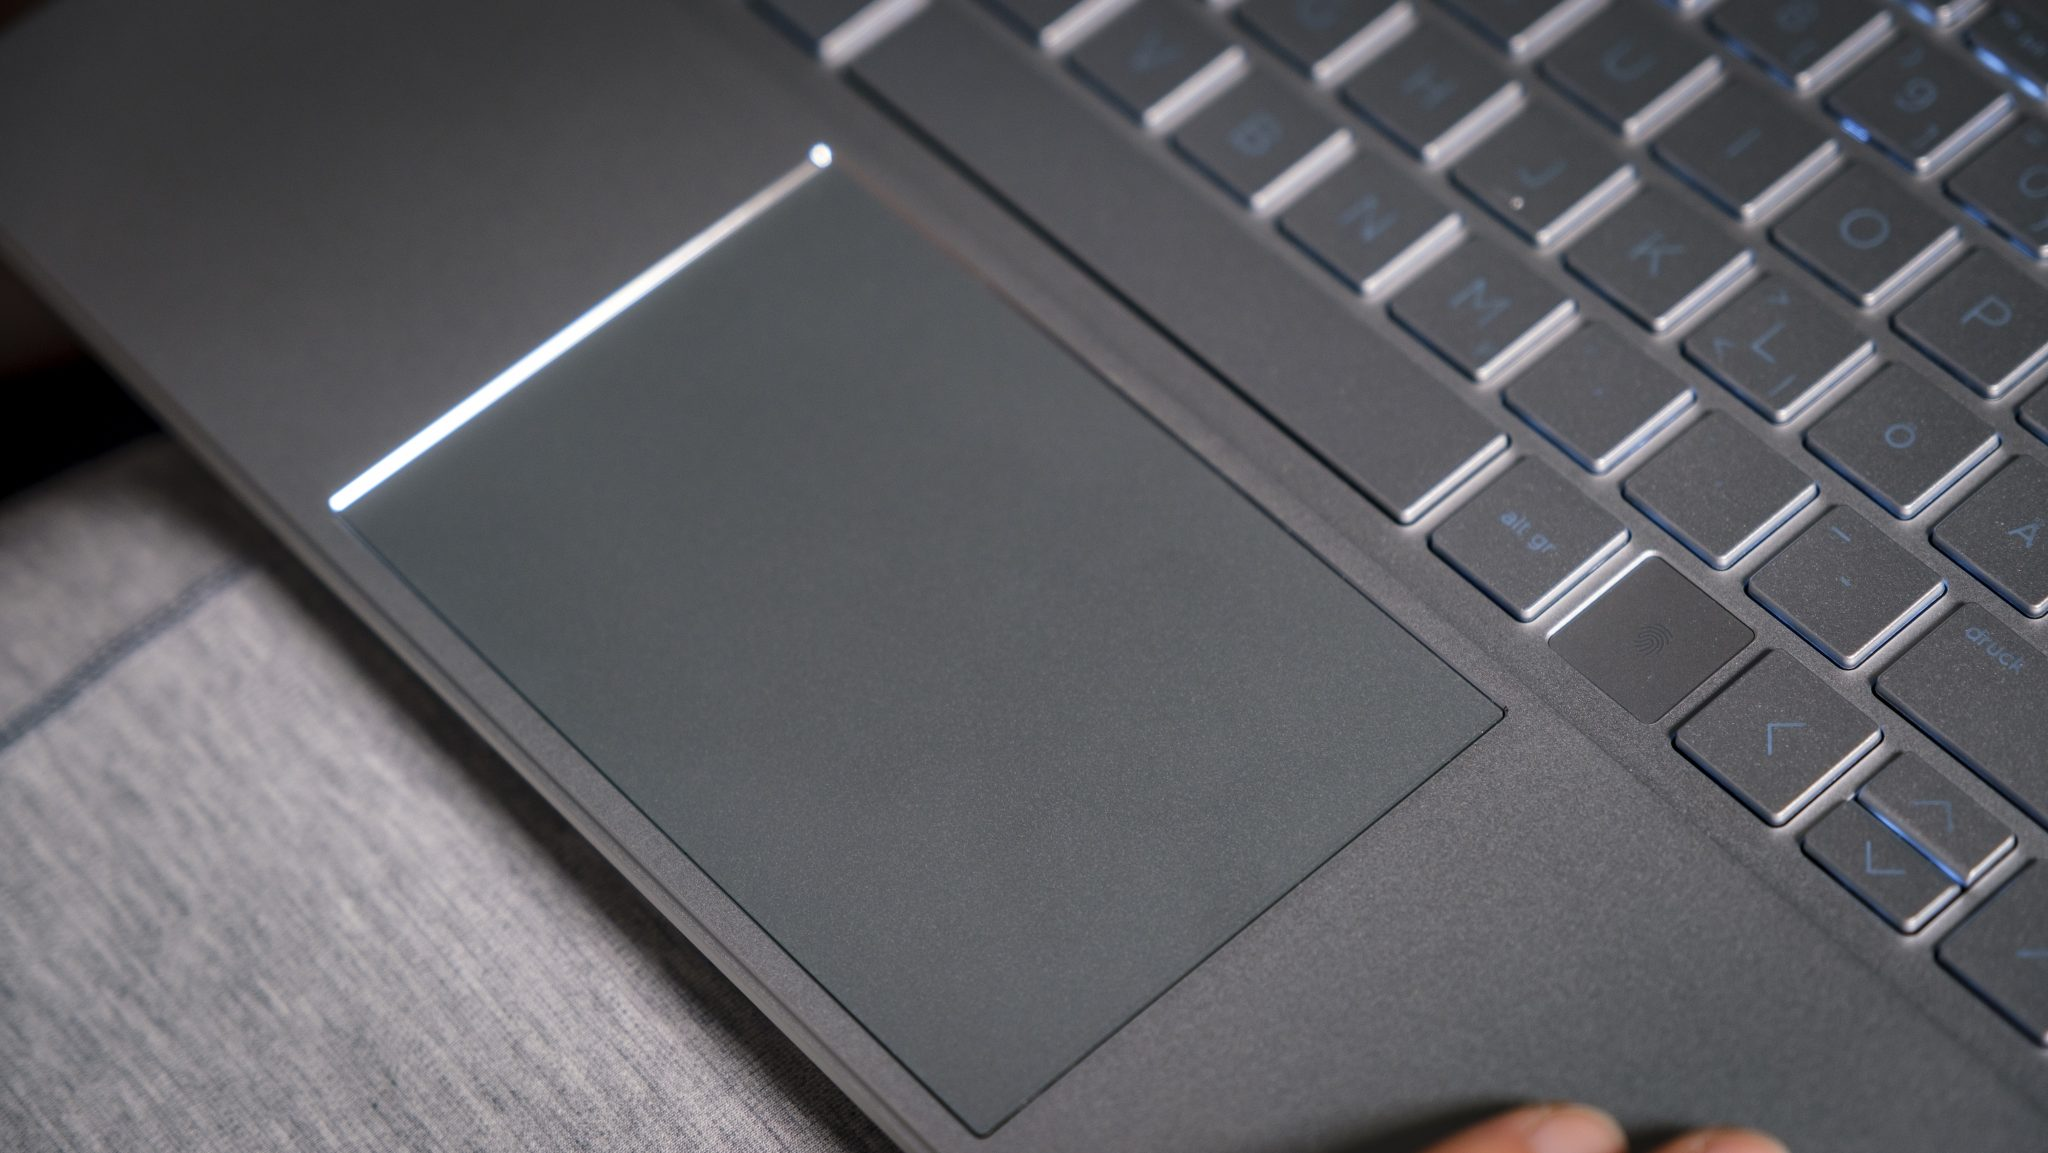 HP ENVY x360 15 Touchpad